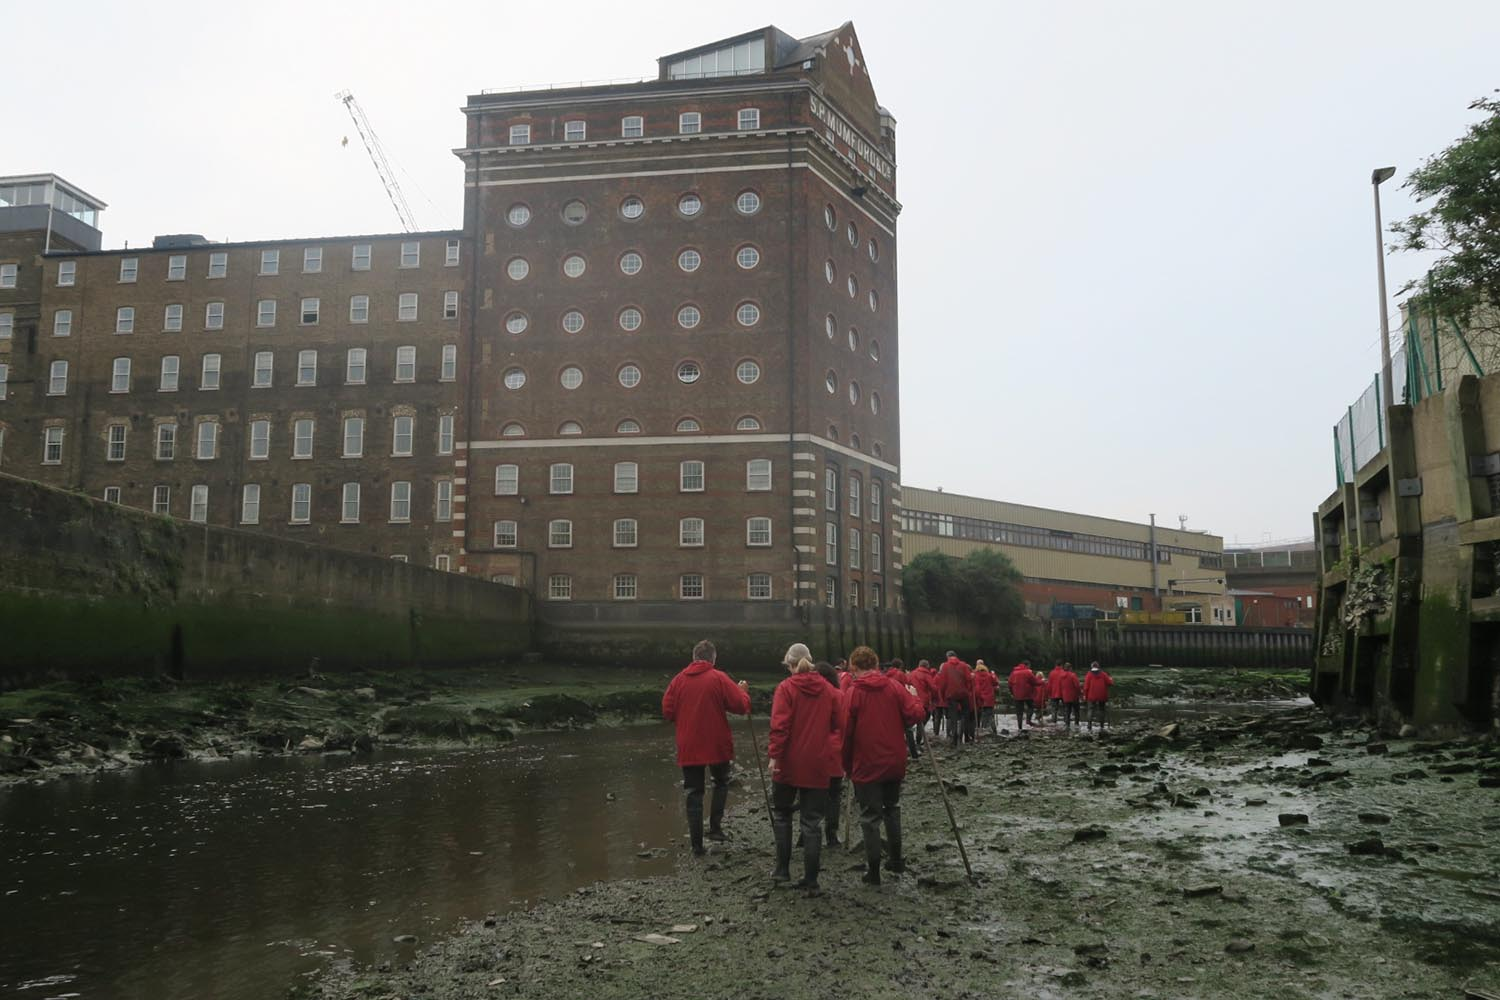 Twice a month, the Creekside Education Fund open their doors to those interested in exploring Deptford Creek during low tide, in all its muddy glory. width=